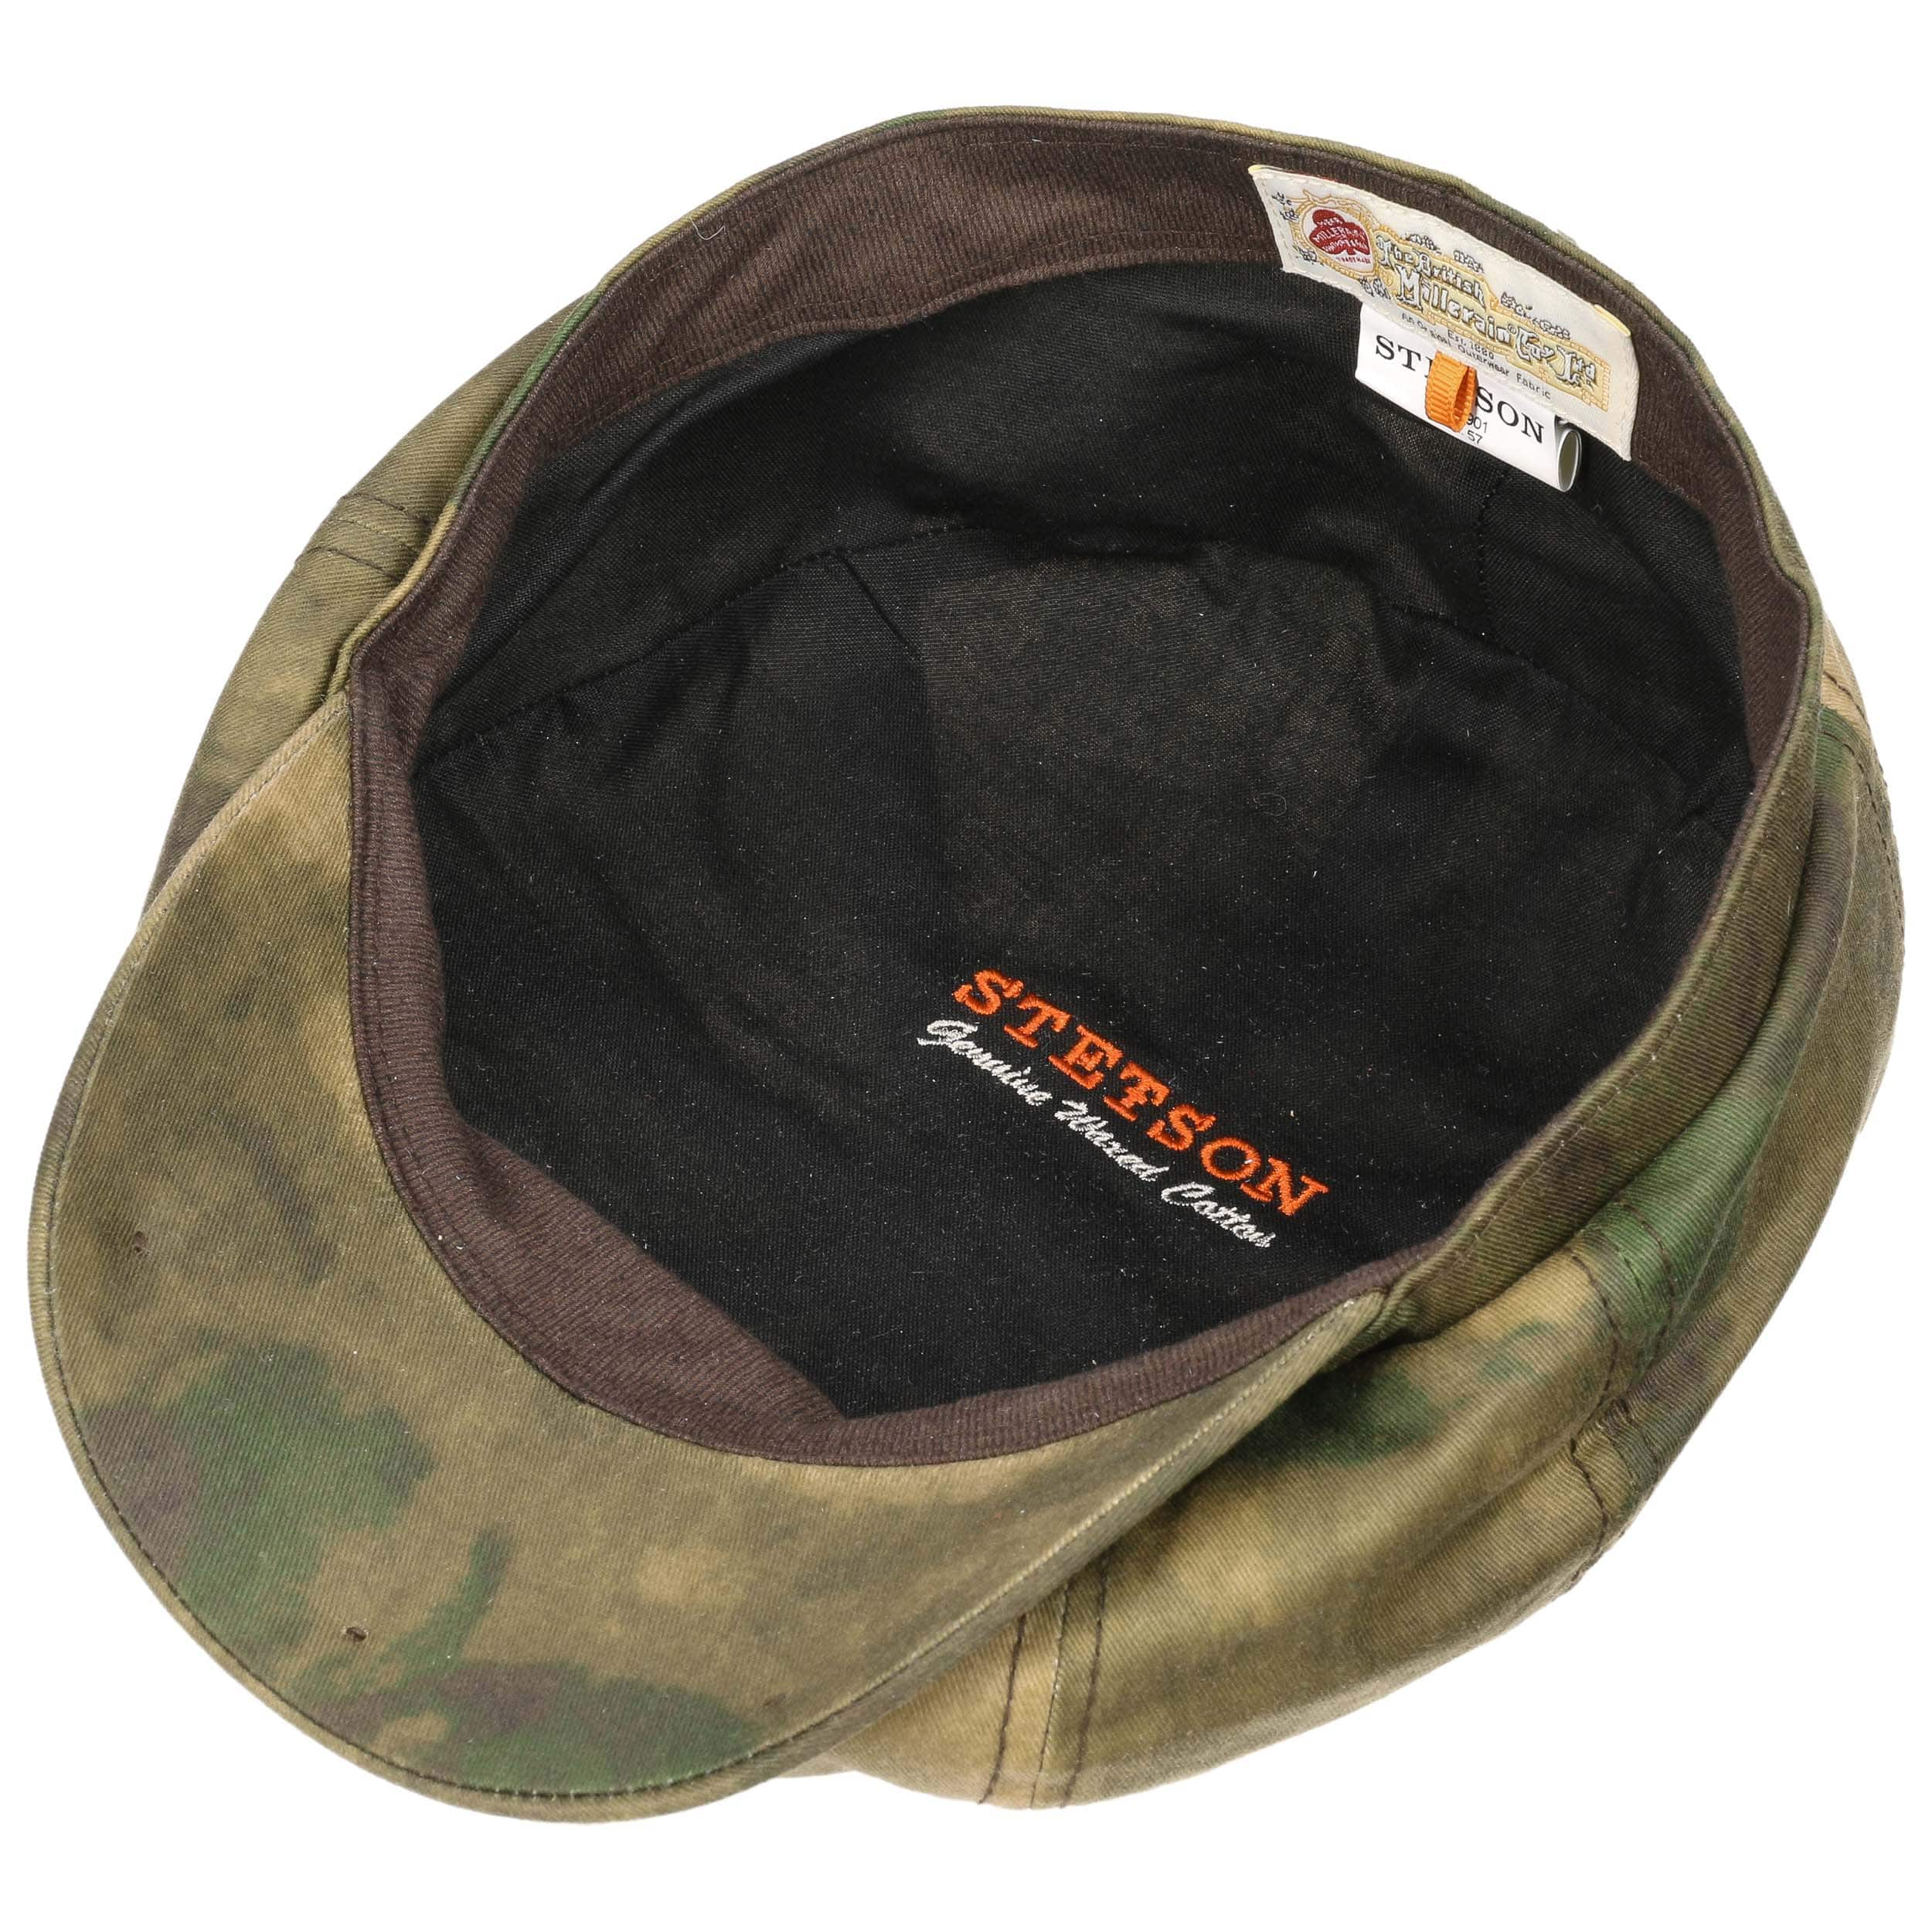 2eda2698915a7 ... Hatteras Camouflage Flat Cap by Stetson - camouflage 2 ...